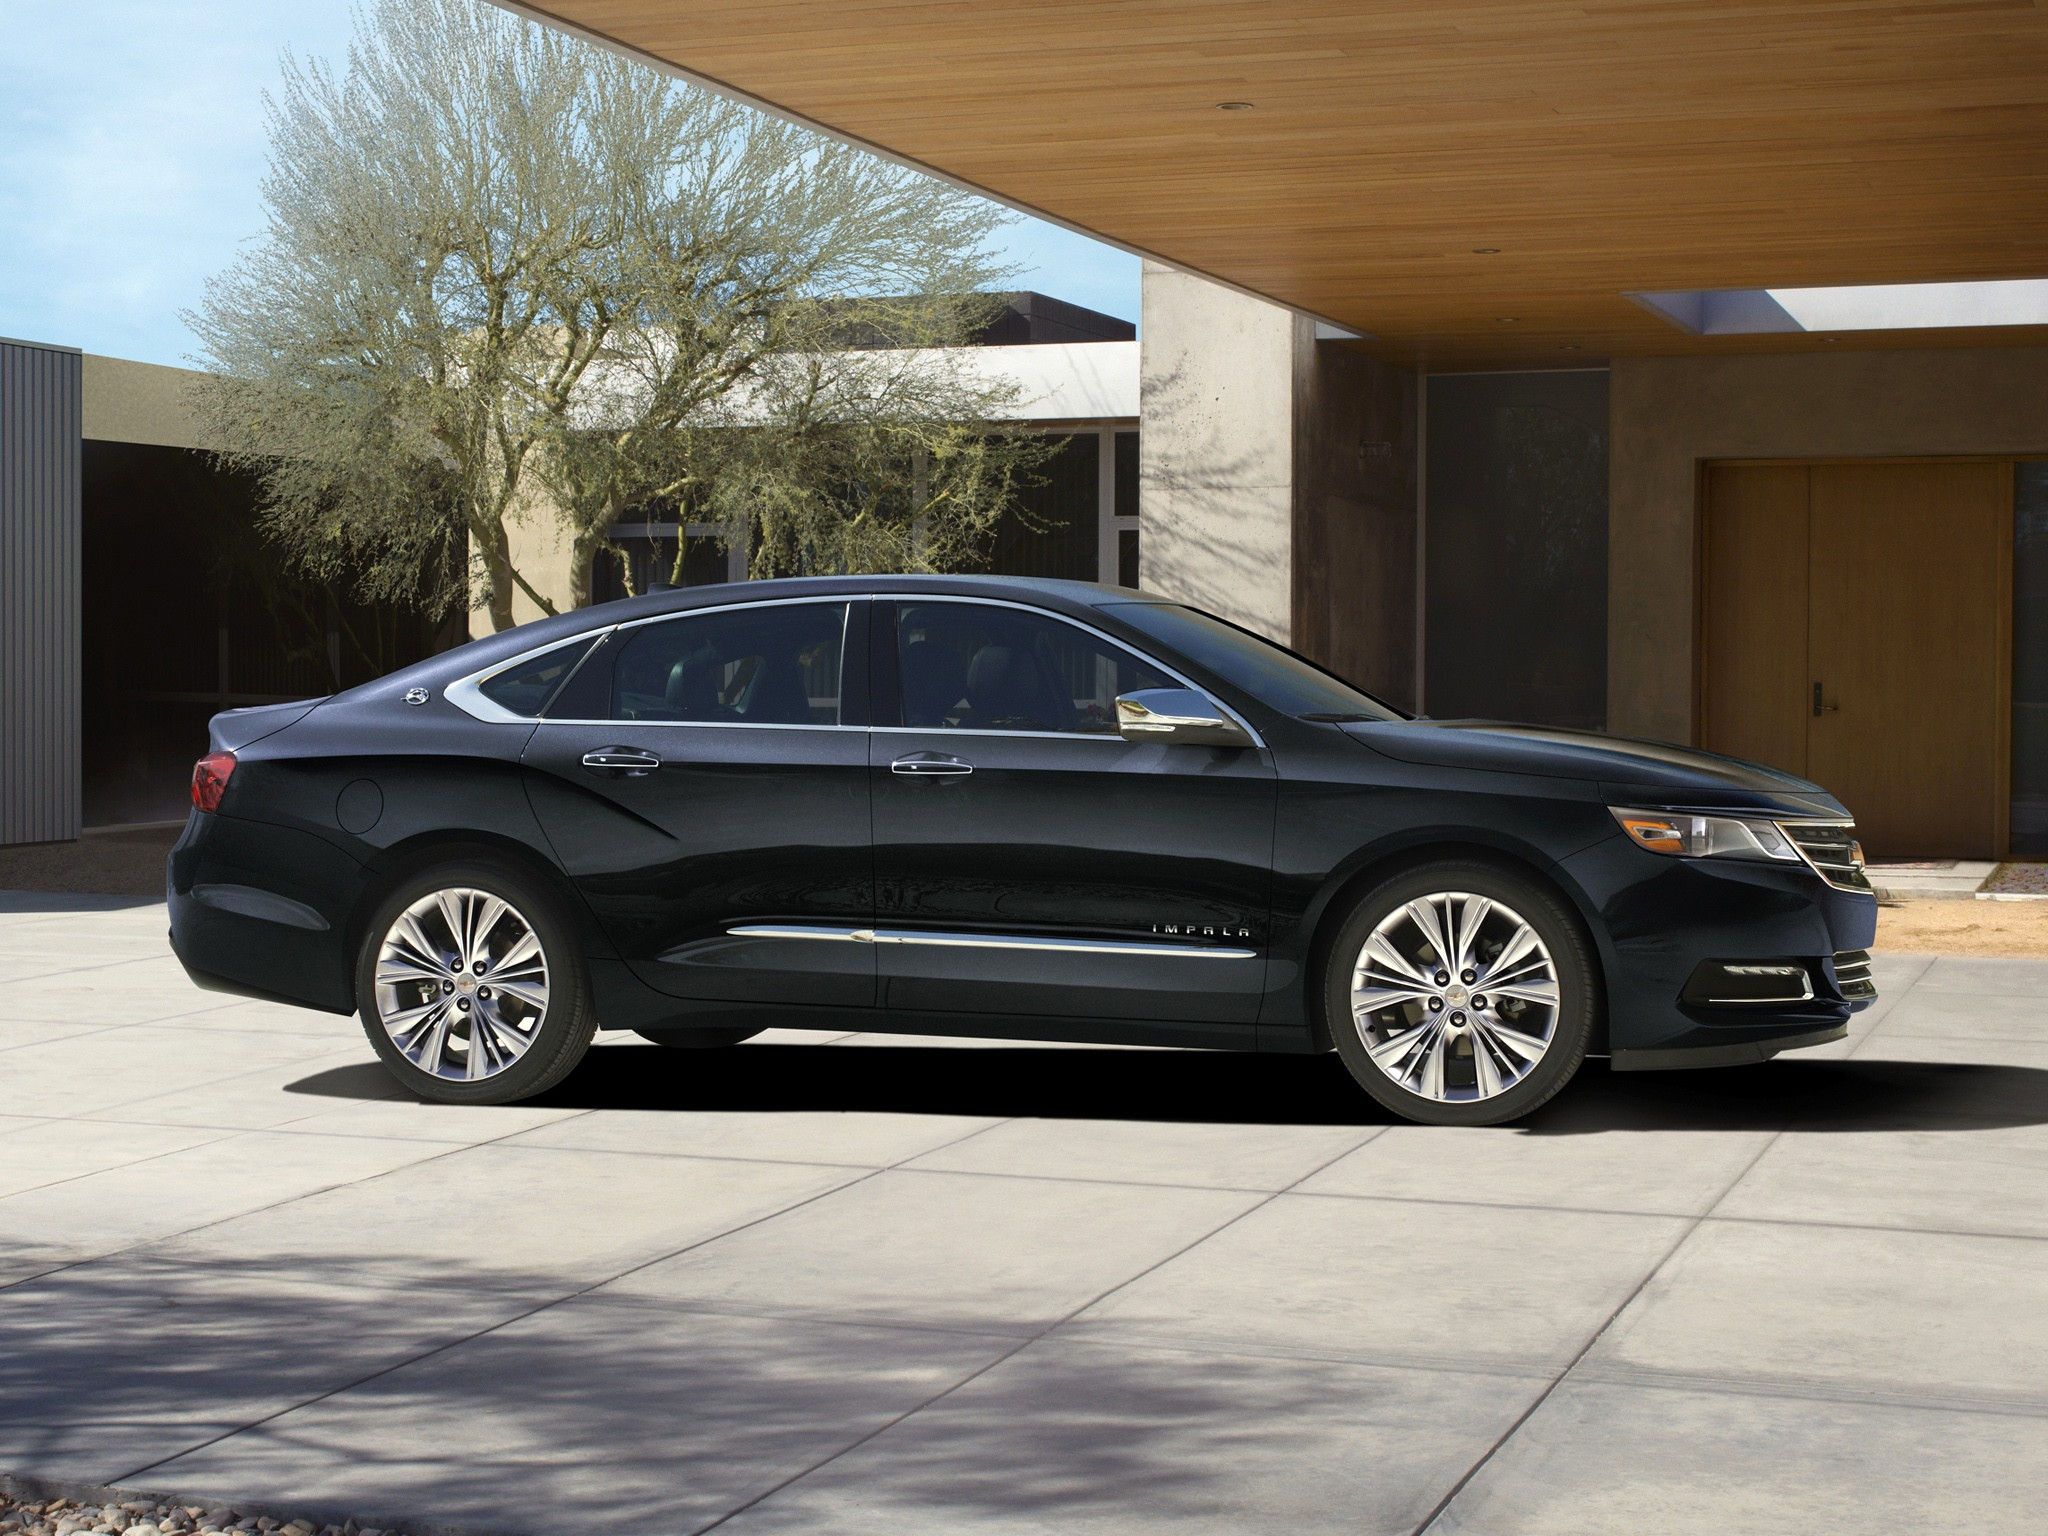 CHEVROLET Impala specs & photos - 2013, 2014, 2015, 2016 ...